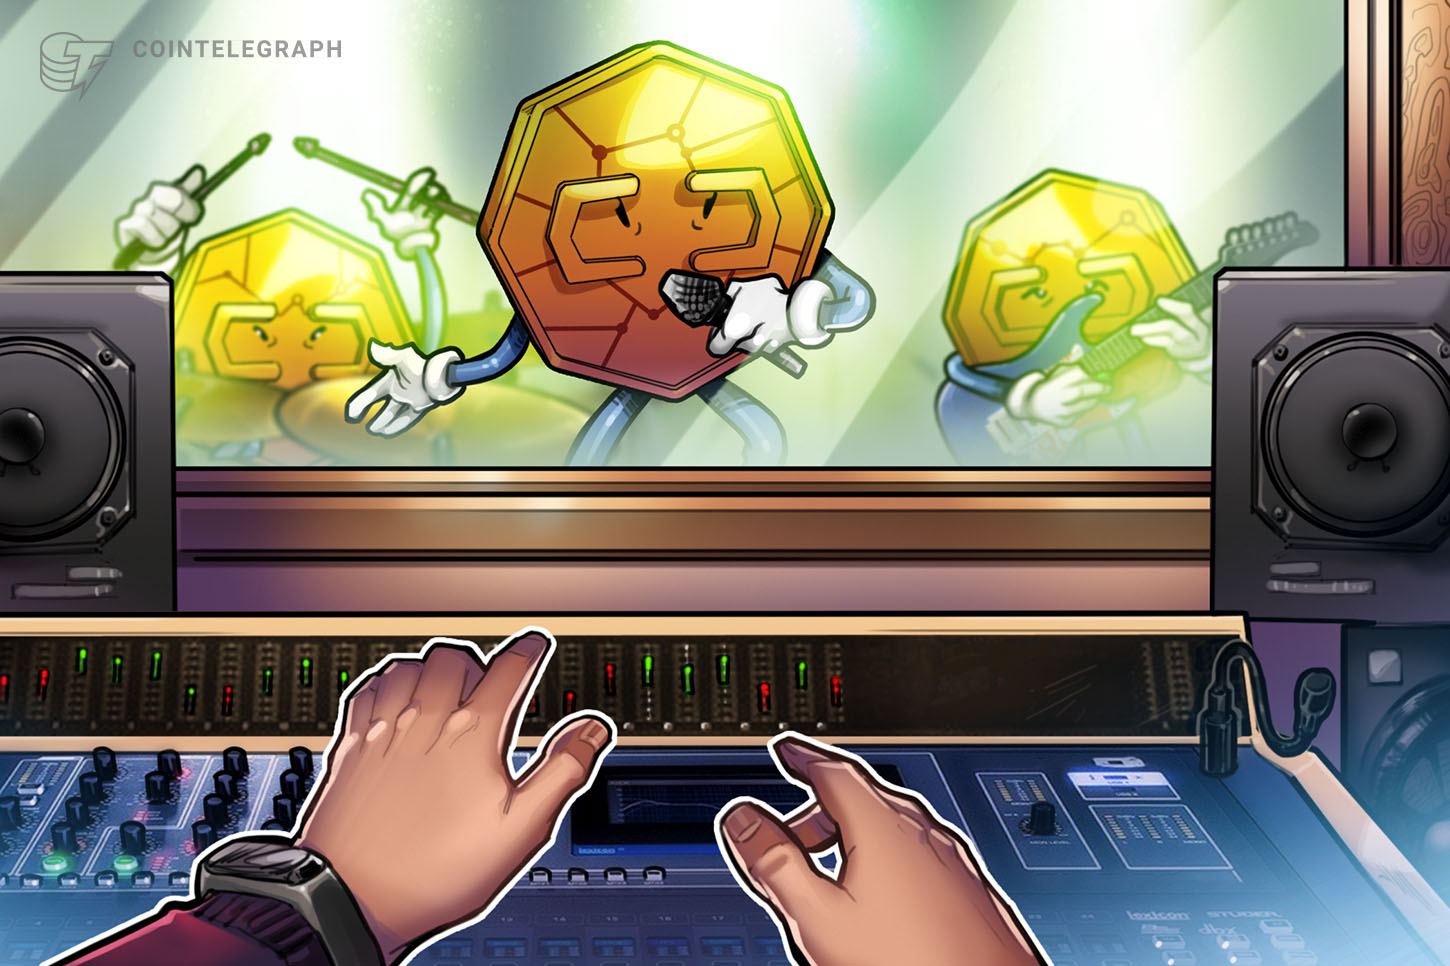 <bold>David</bold> Guetta secures deal with crypto-centered VR platform